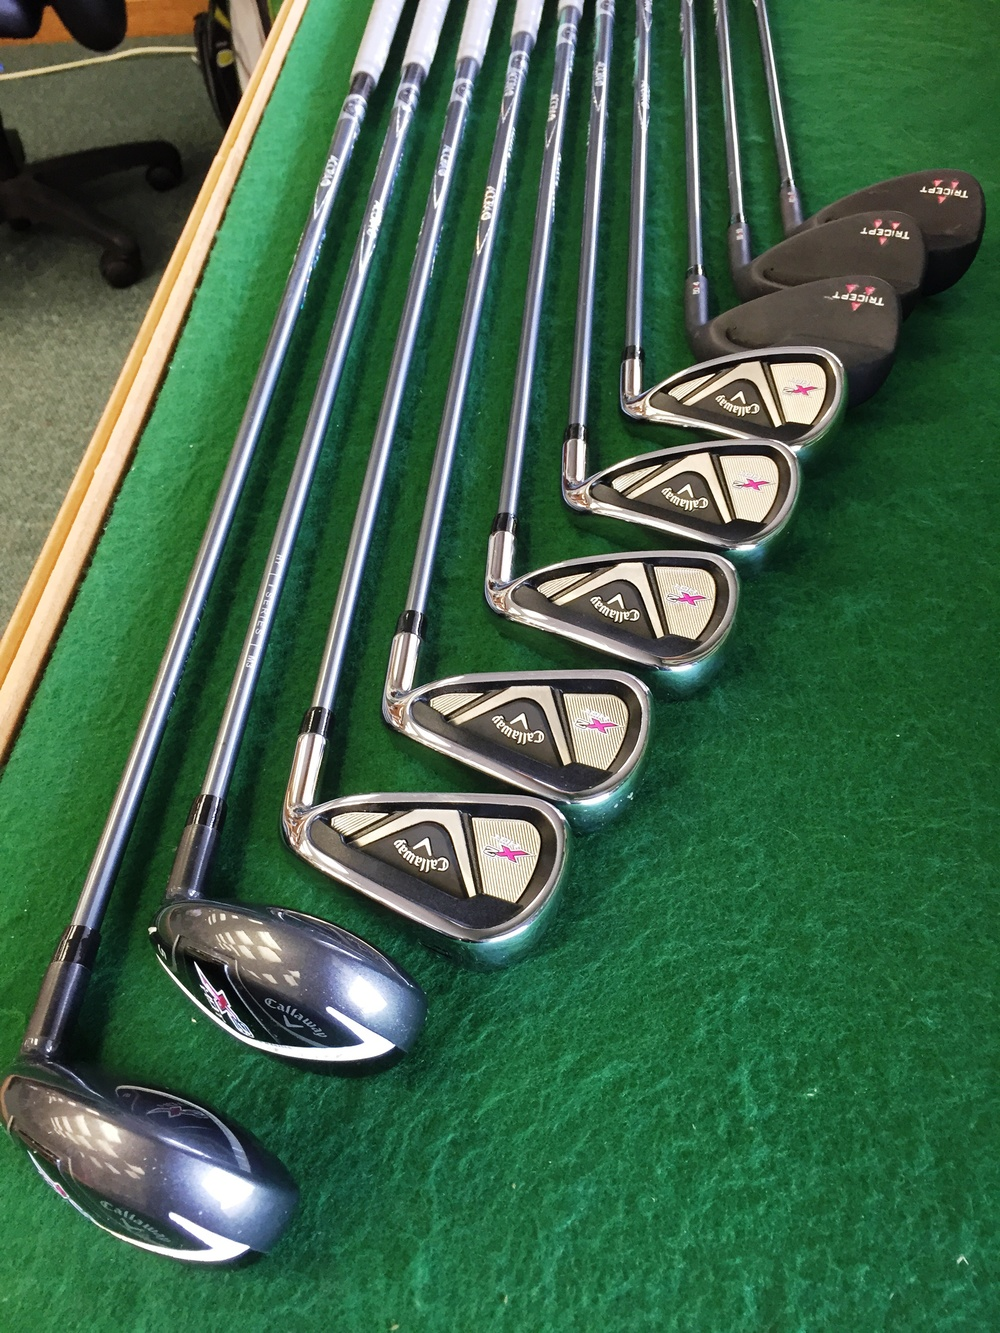 joyce new clubs 2.jpg